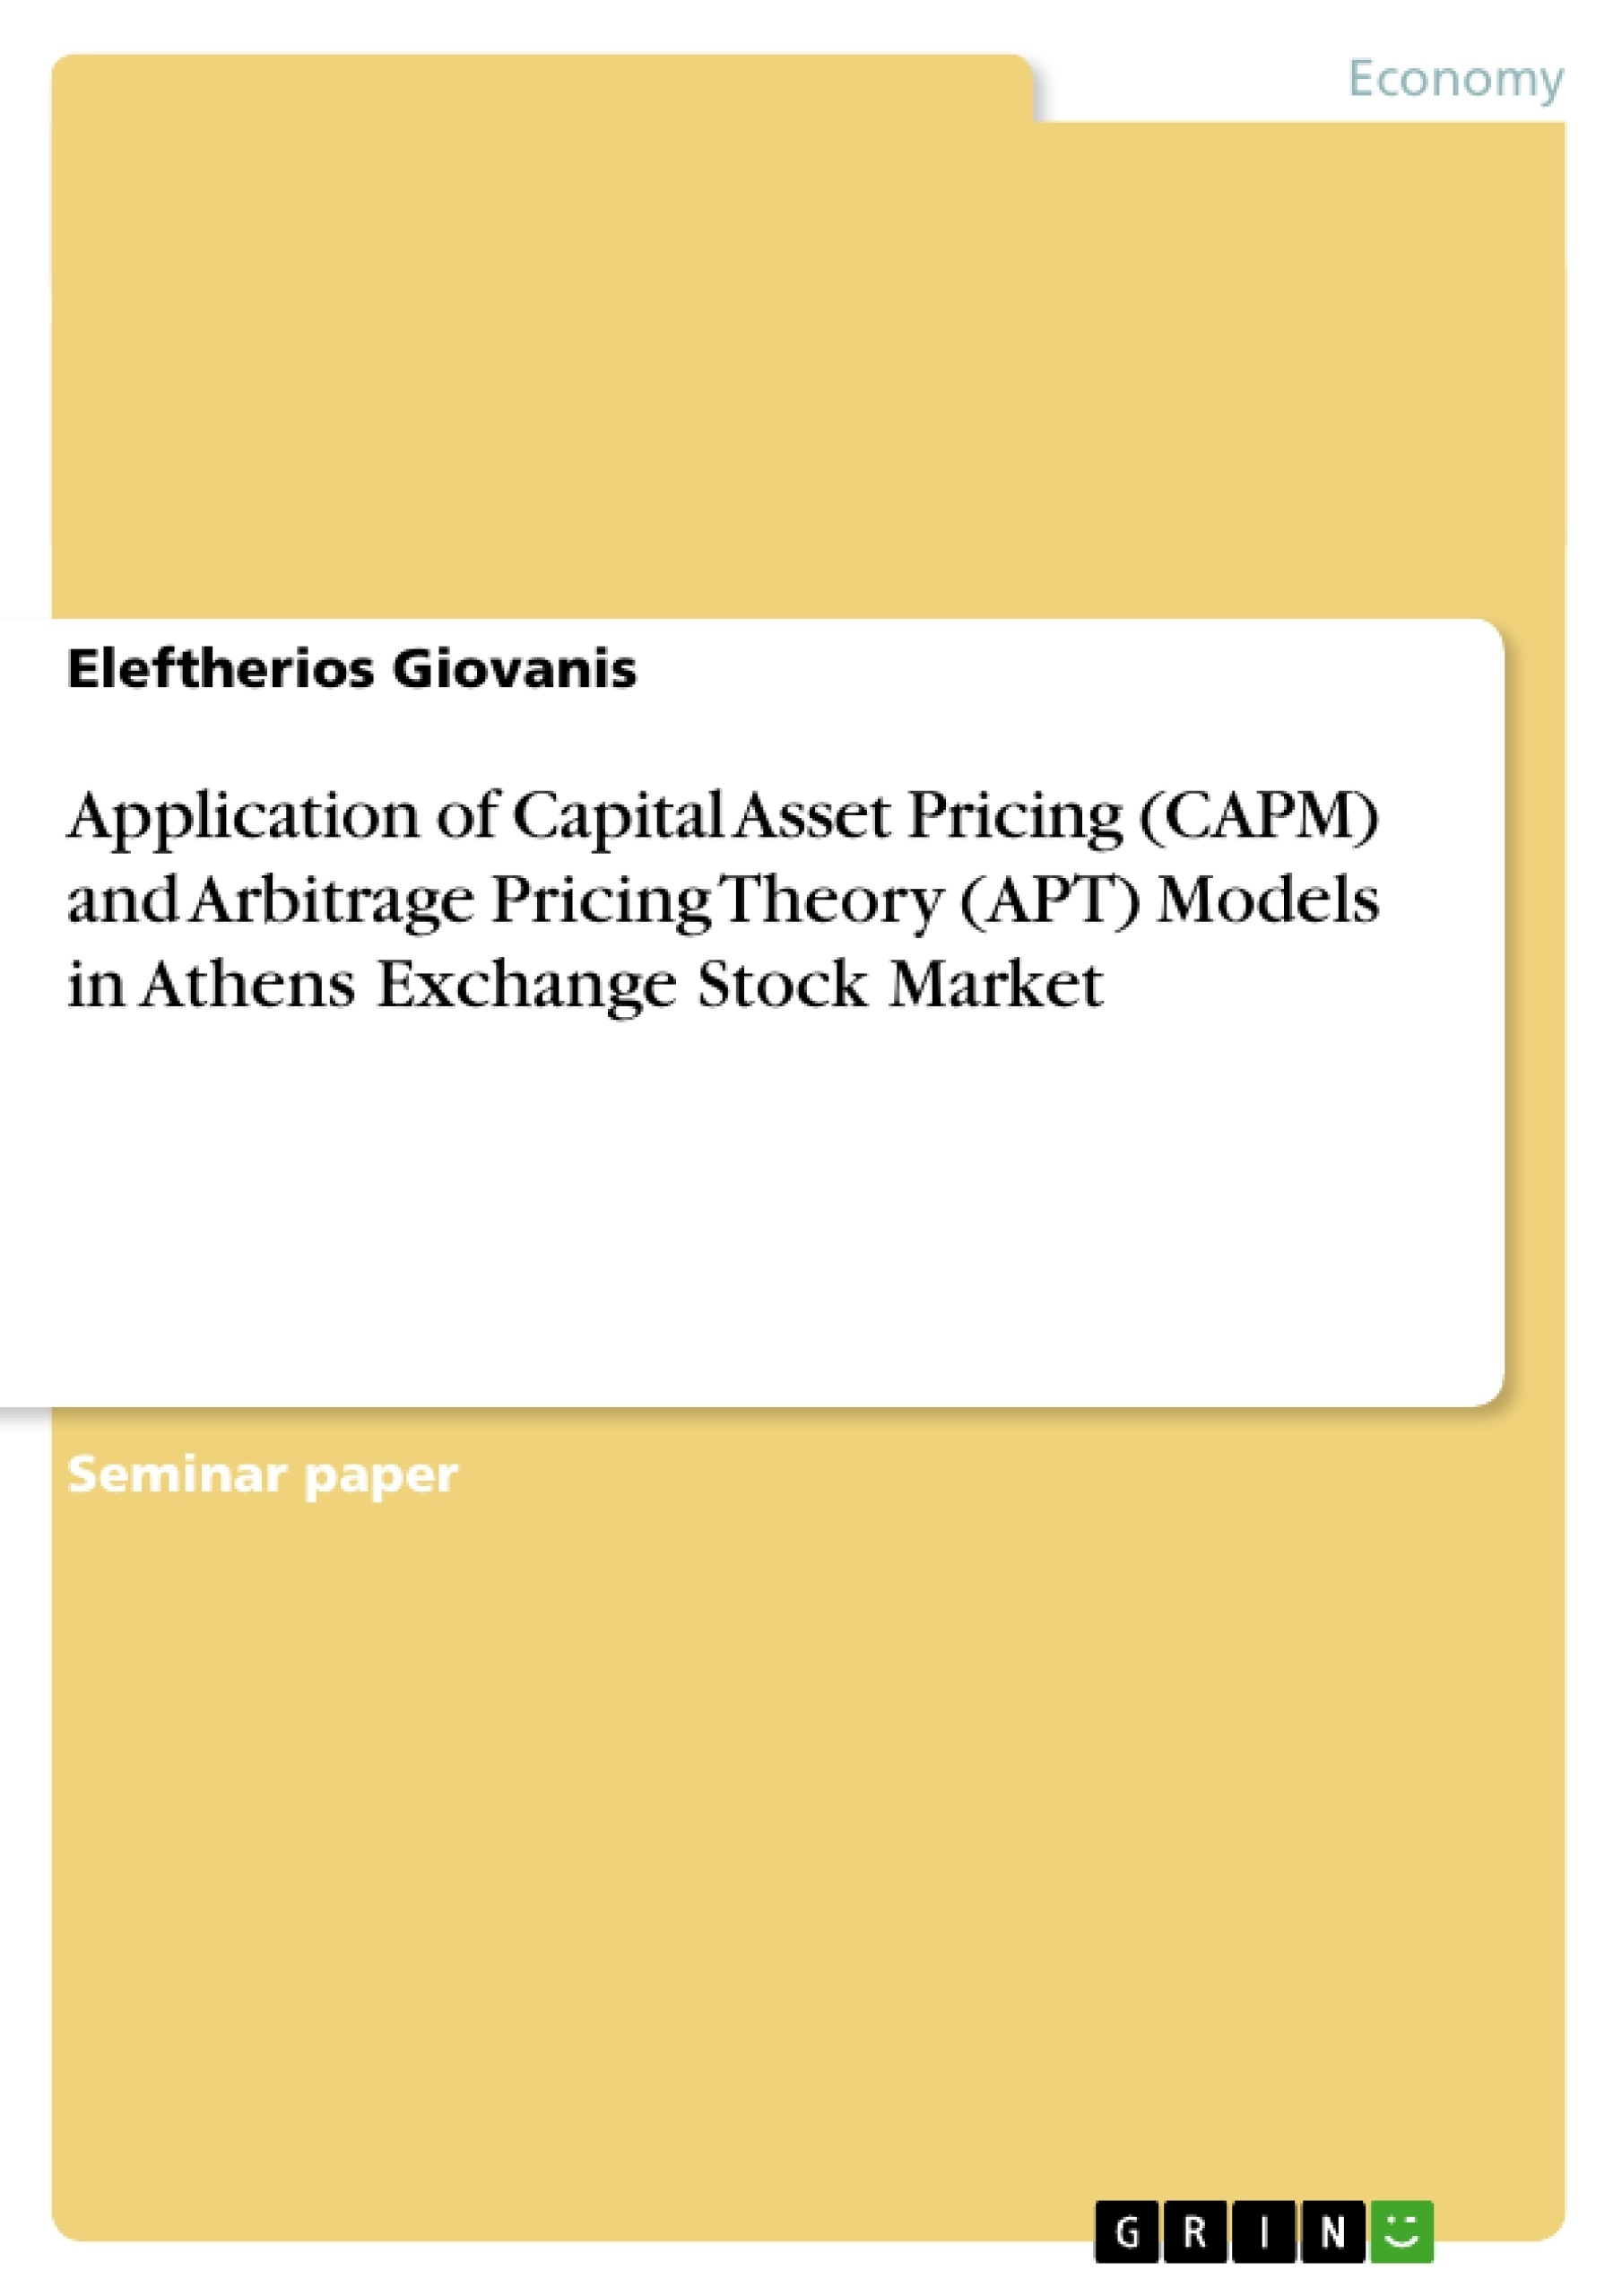 arbitrage pricing theory research papers Term paper on dividend discount model, capital asset pricing model and arbitrage pricing theory.